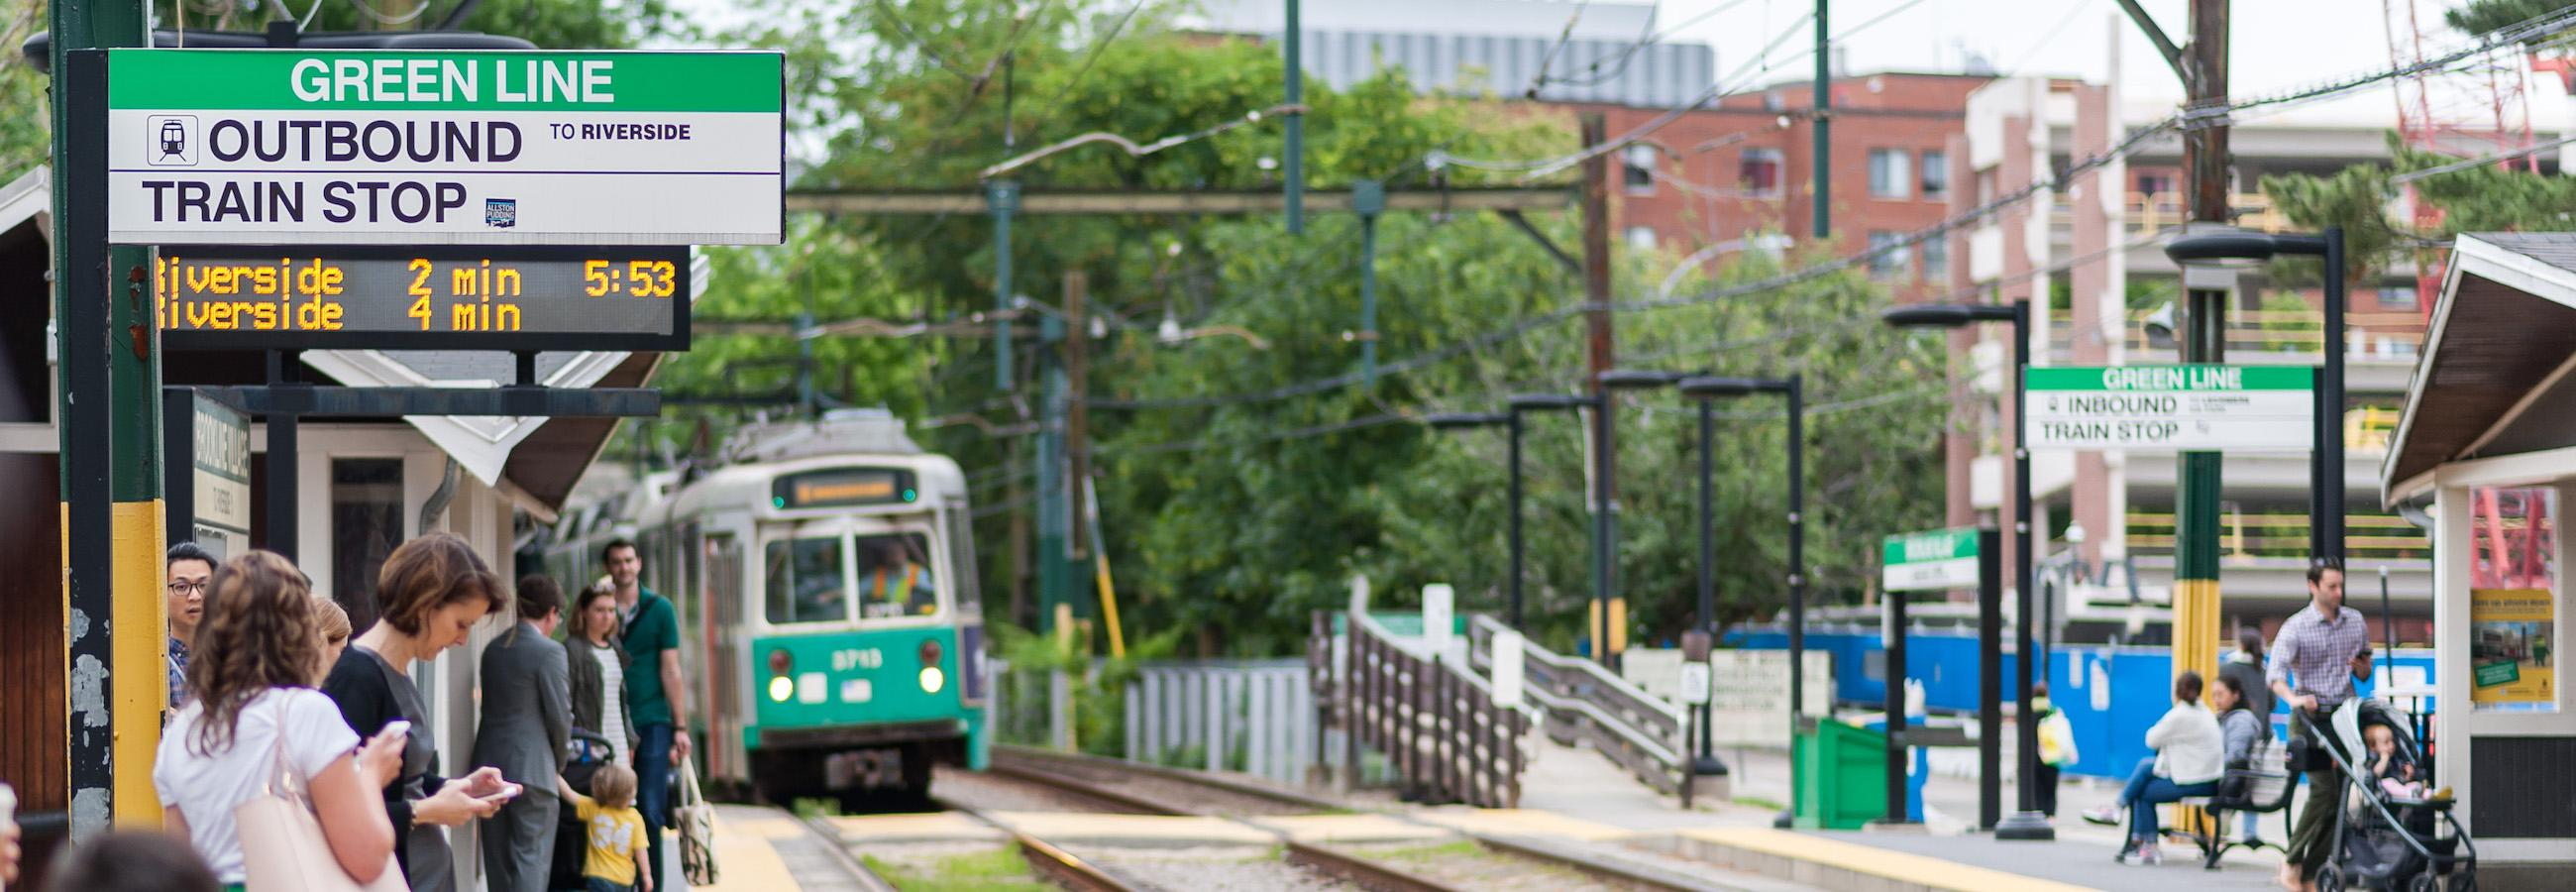 customers wait for arriving green line train at brookline village